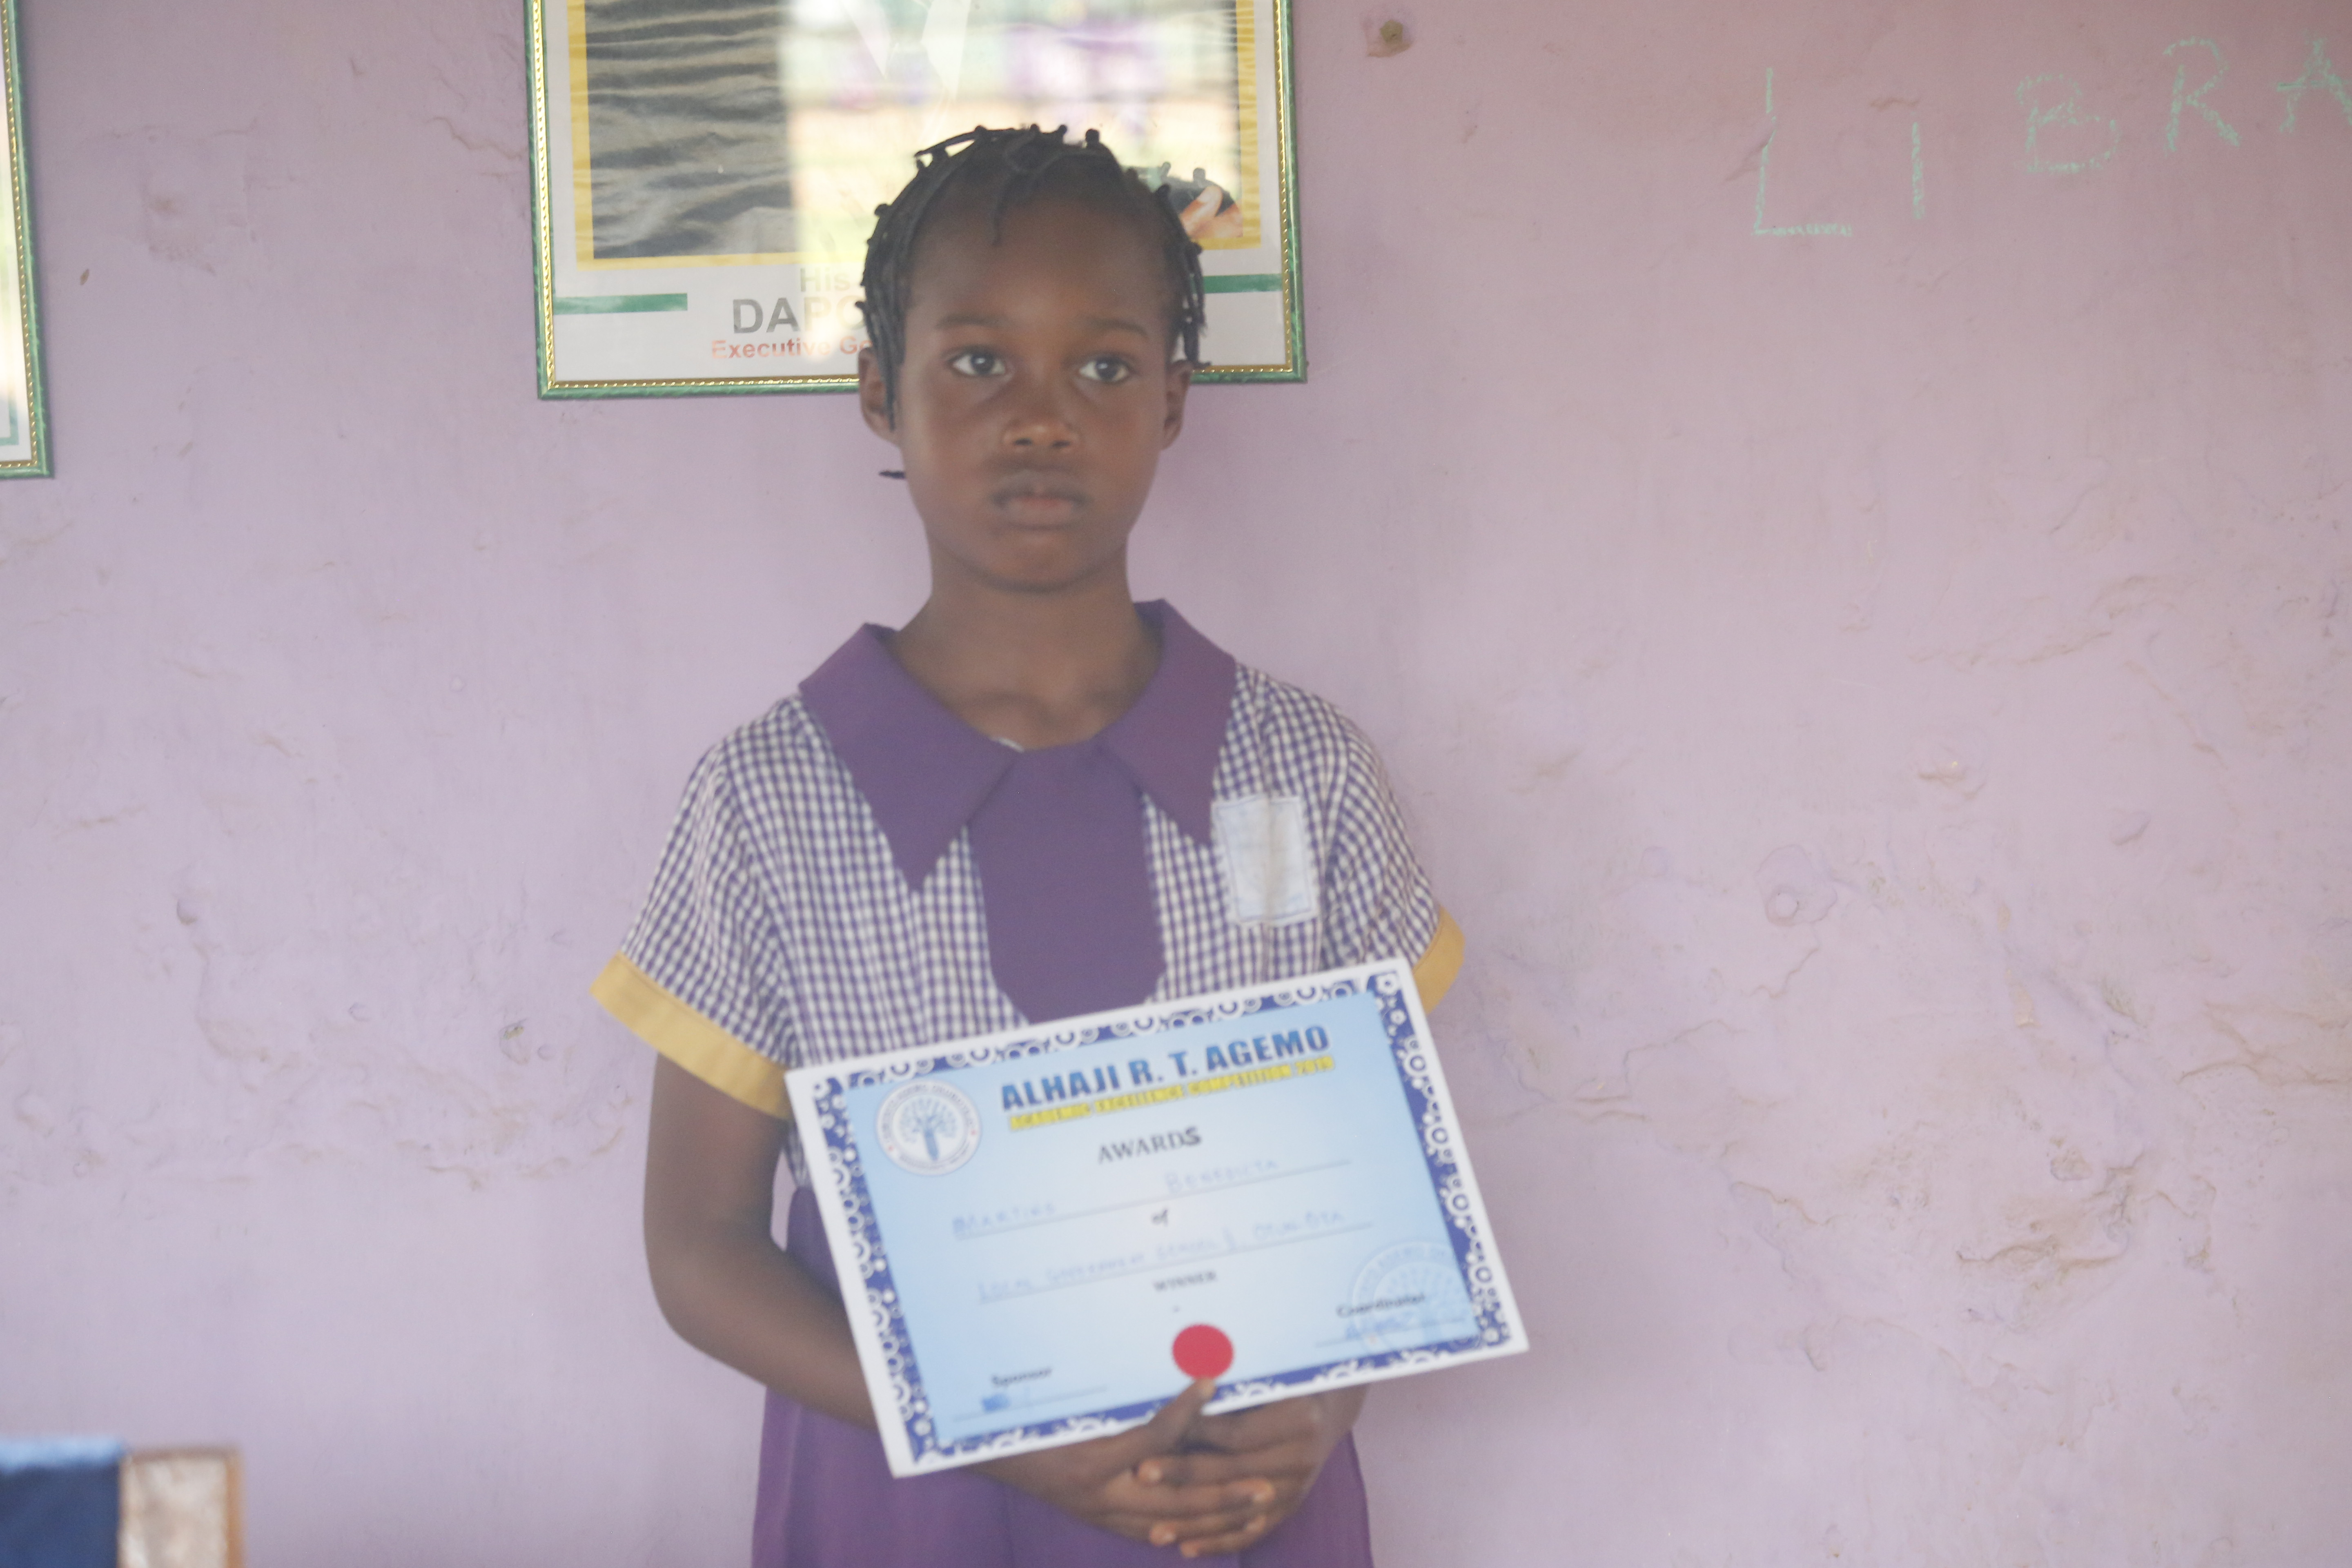 10 Year Old Benedicta Of LG Pry School II Ota, Wins 2019 Agemo Academic Excellence  Competition